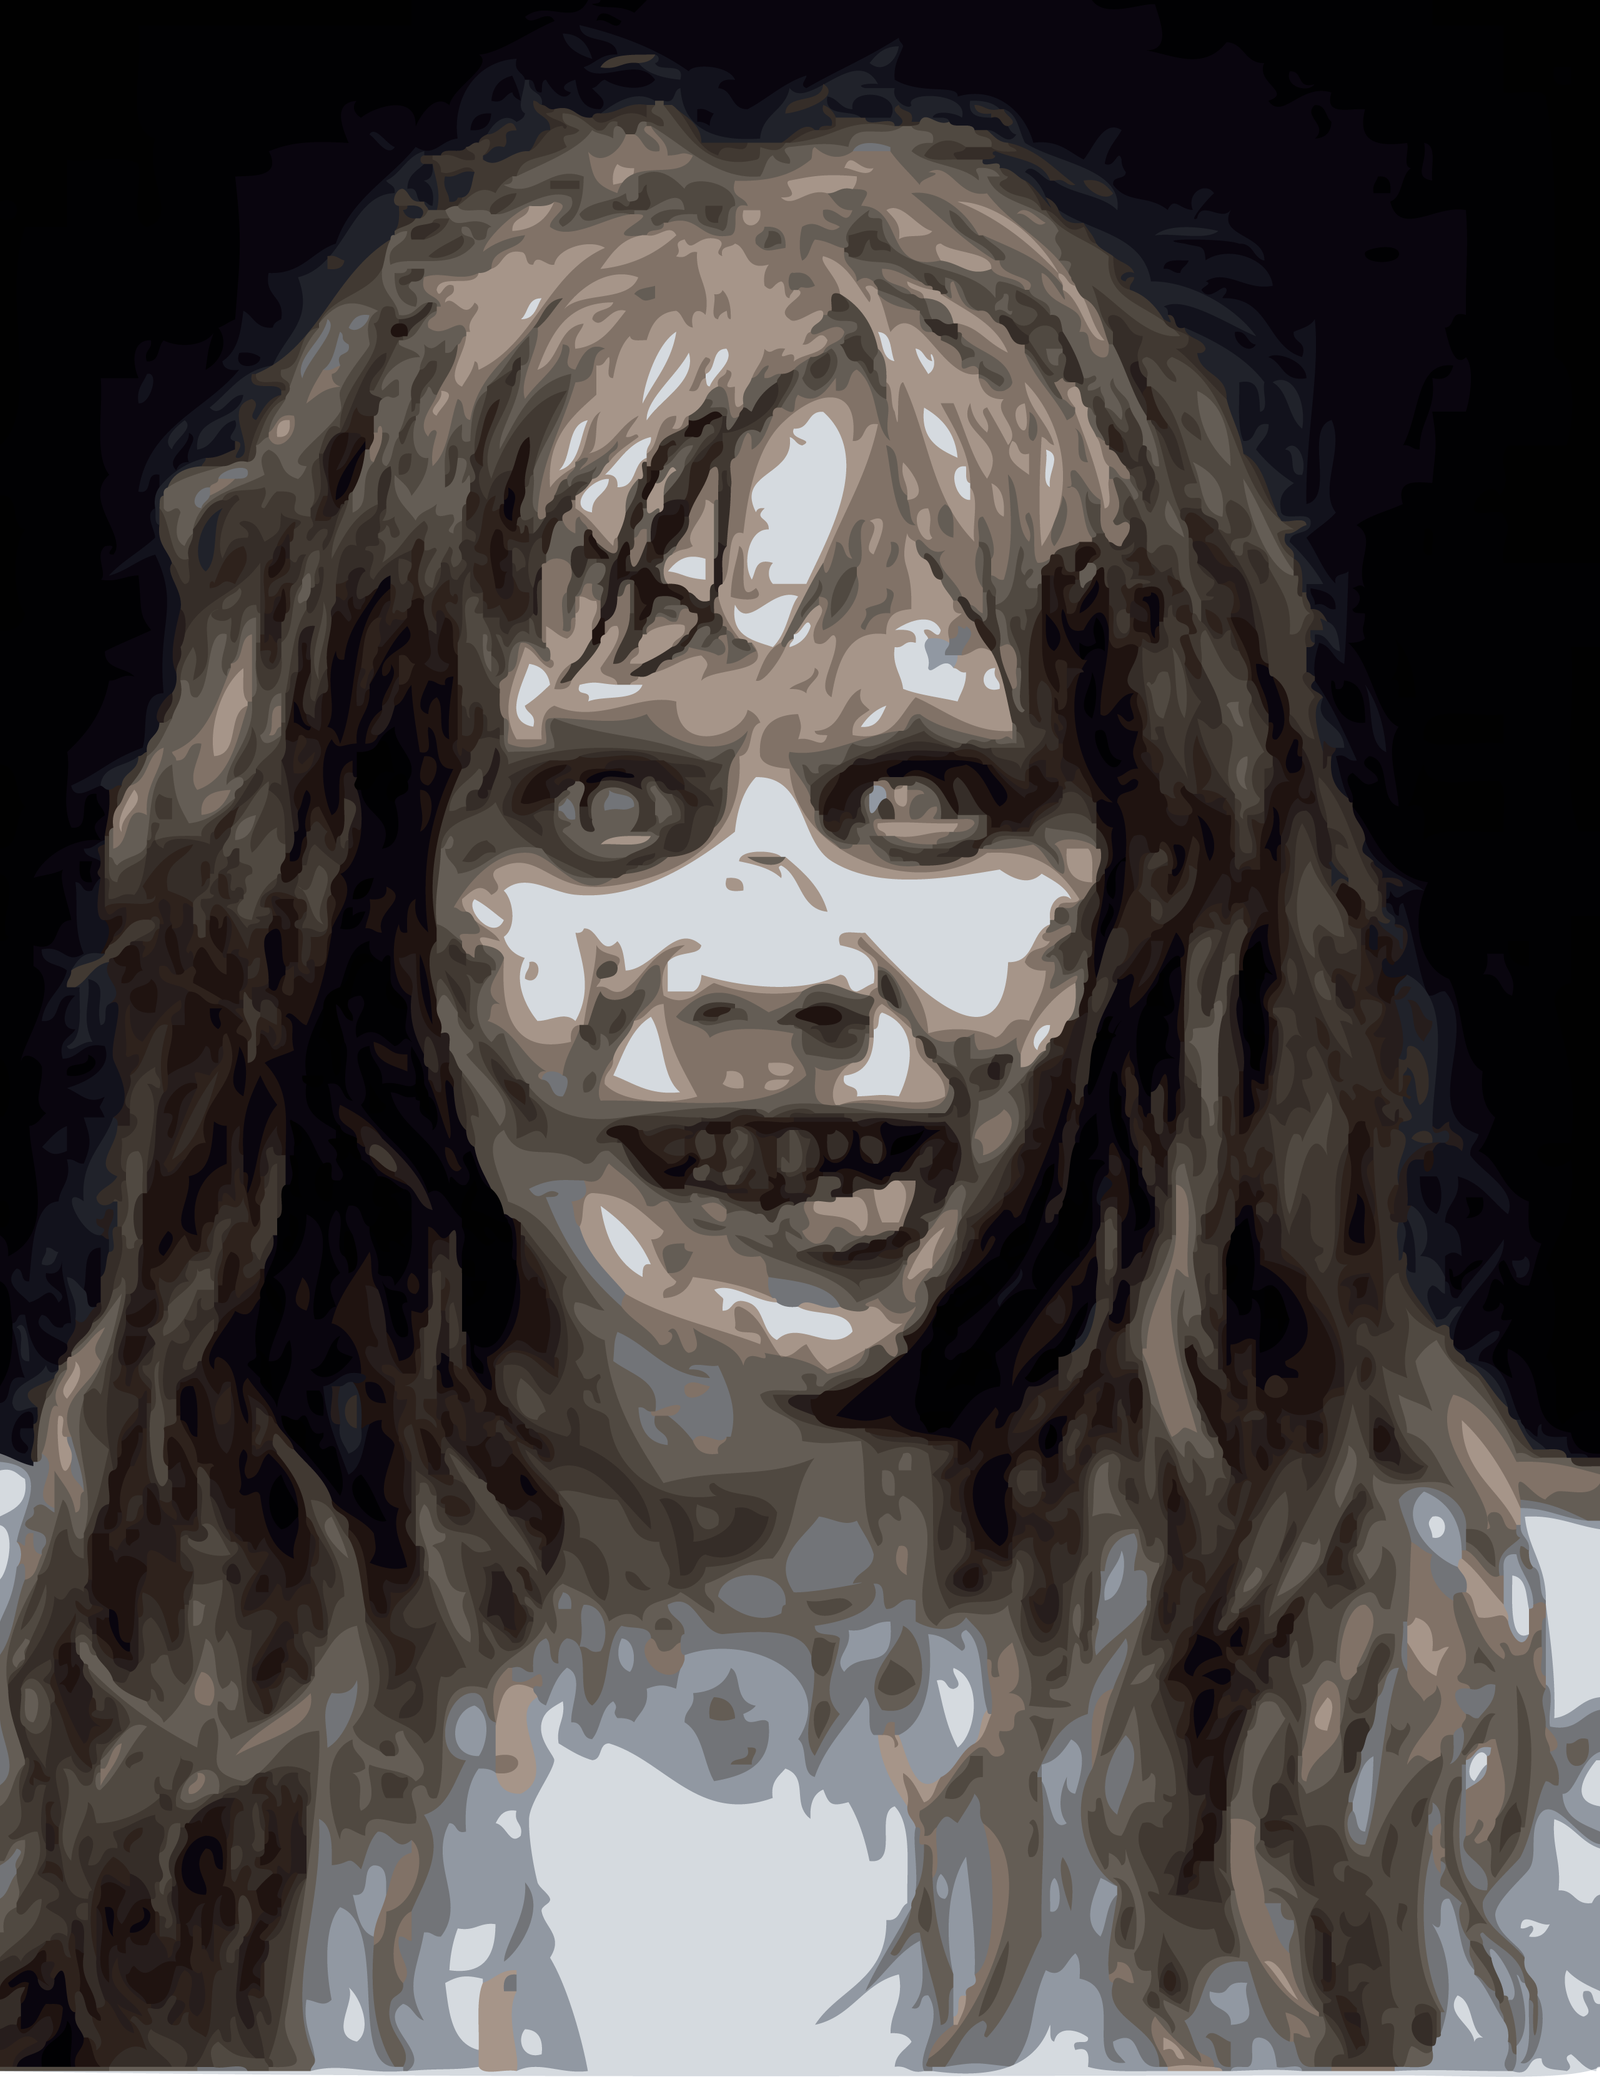 To acquire The regan exorcist pictures picture trends